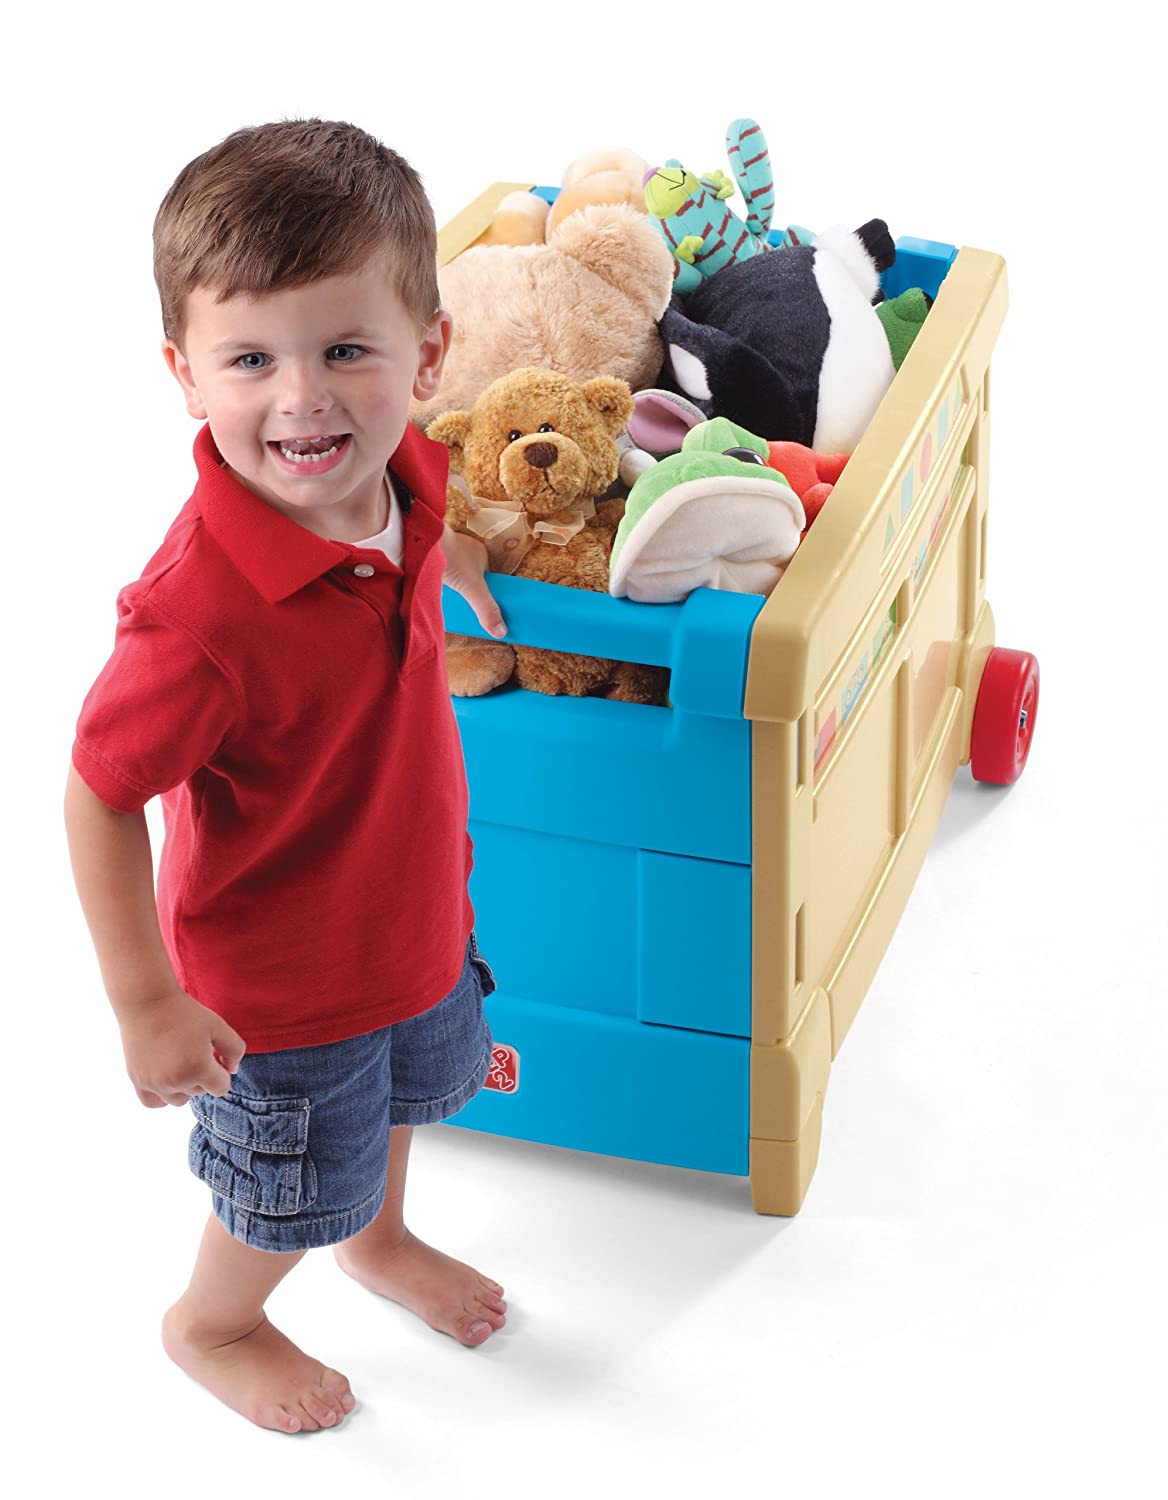 Amazon.com: Step2 Lift and Roll Toy Box: Toys & Games